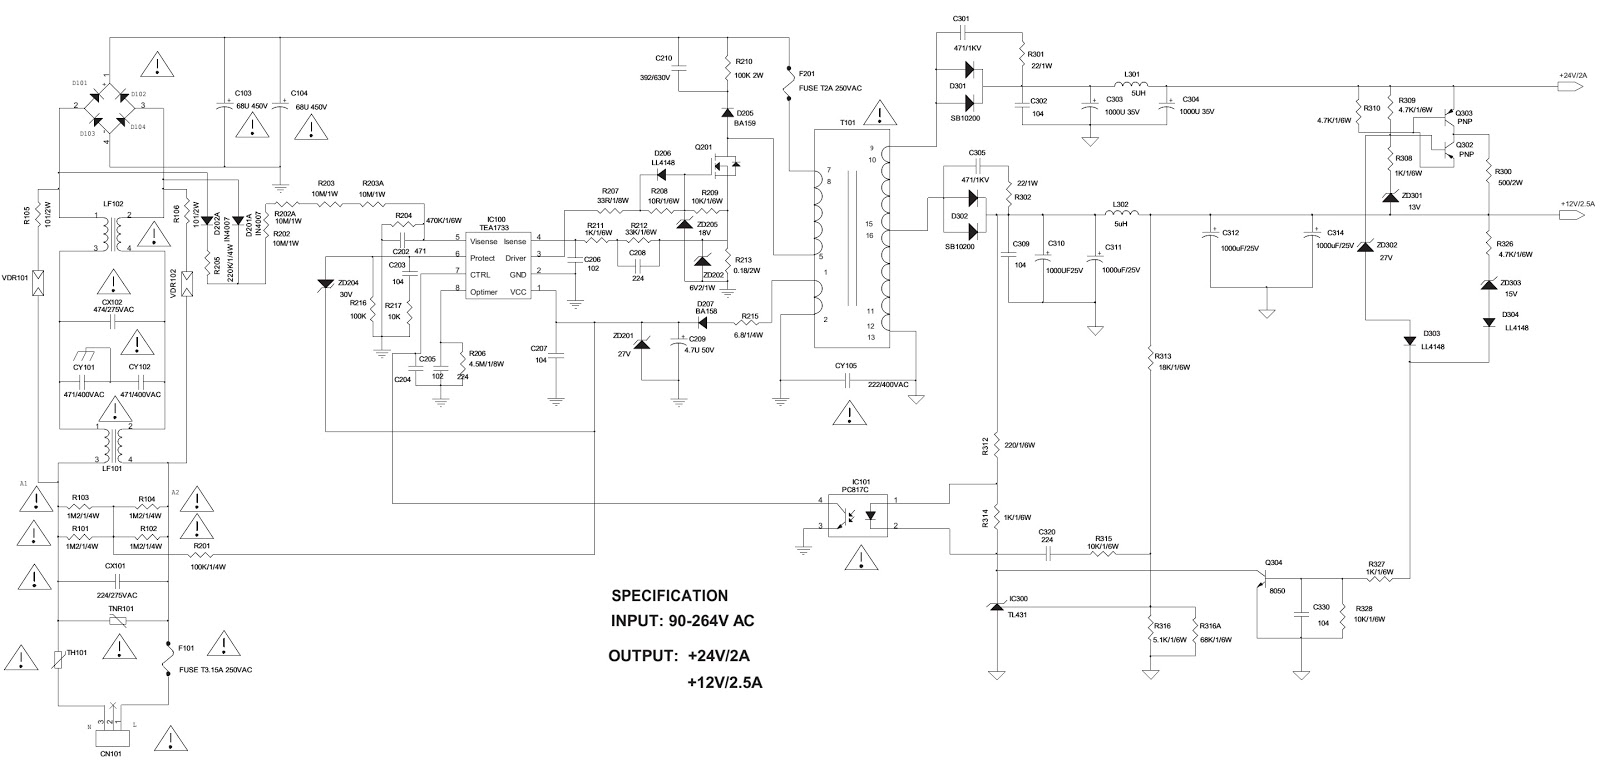 FIG 1 toshiba le3273 toshiba le3973 led lcd tv smps circuit diagram toshiba motor wiring diagram at edmiracle.co